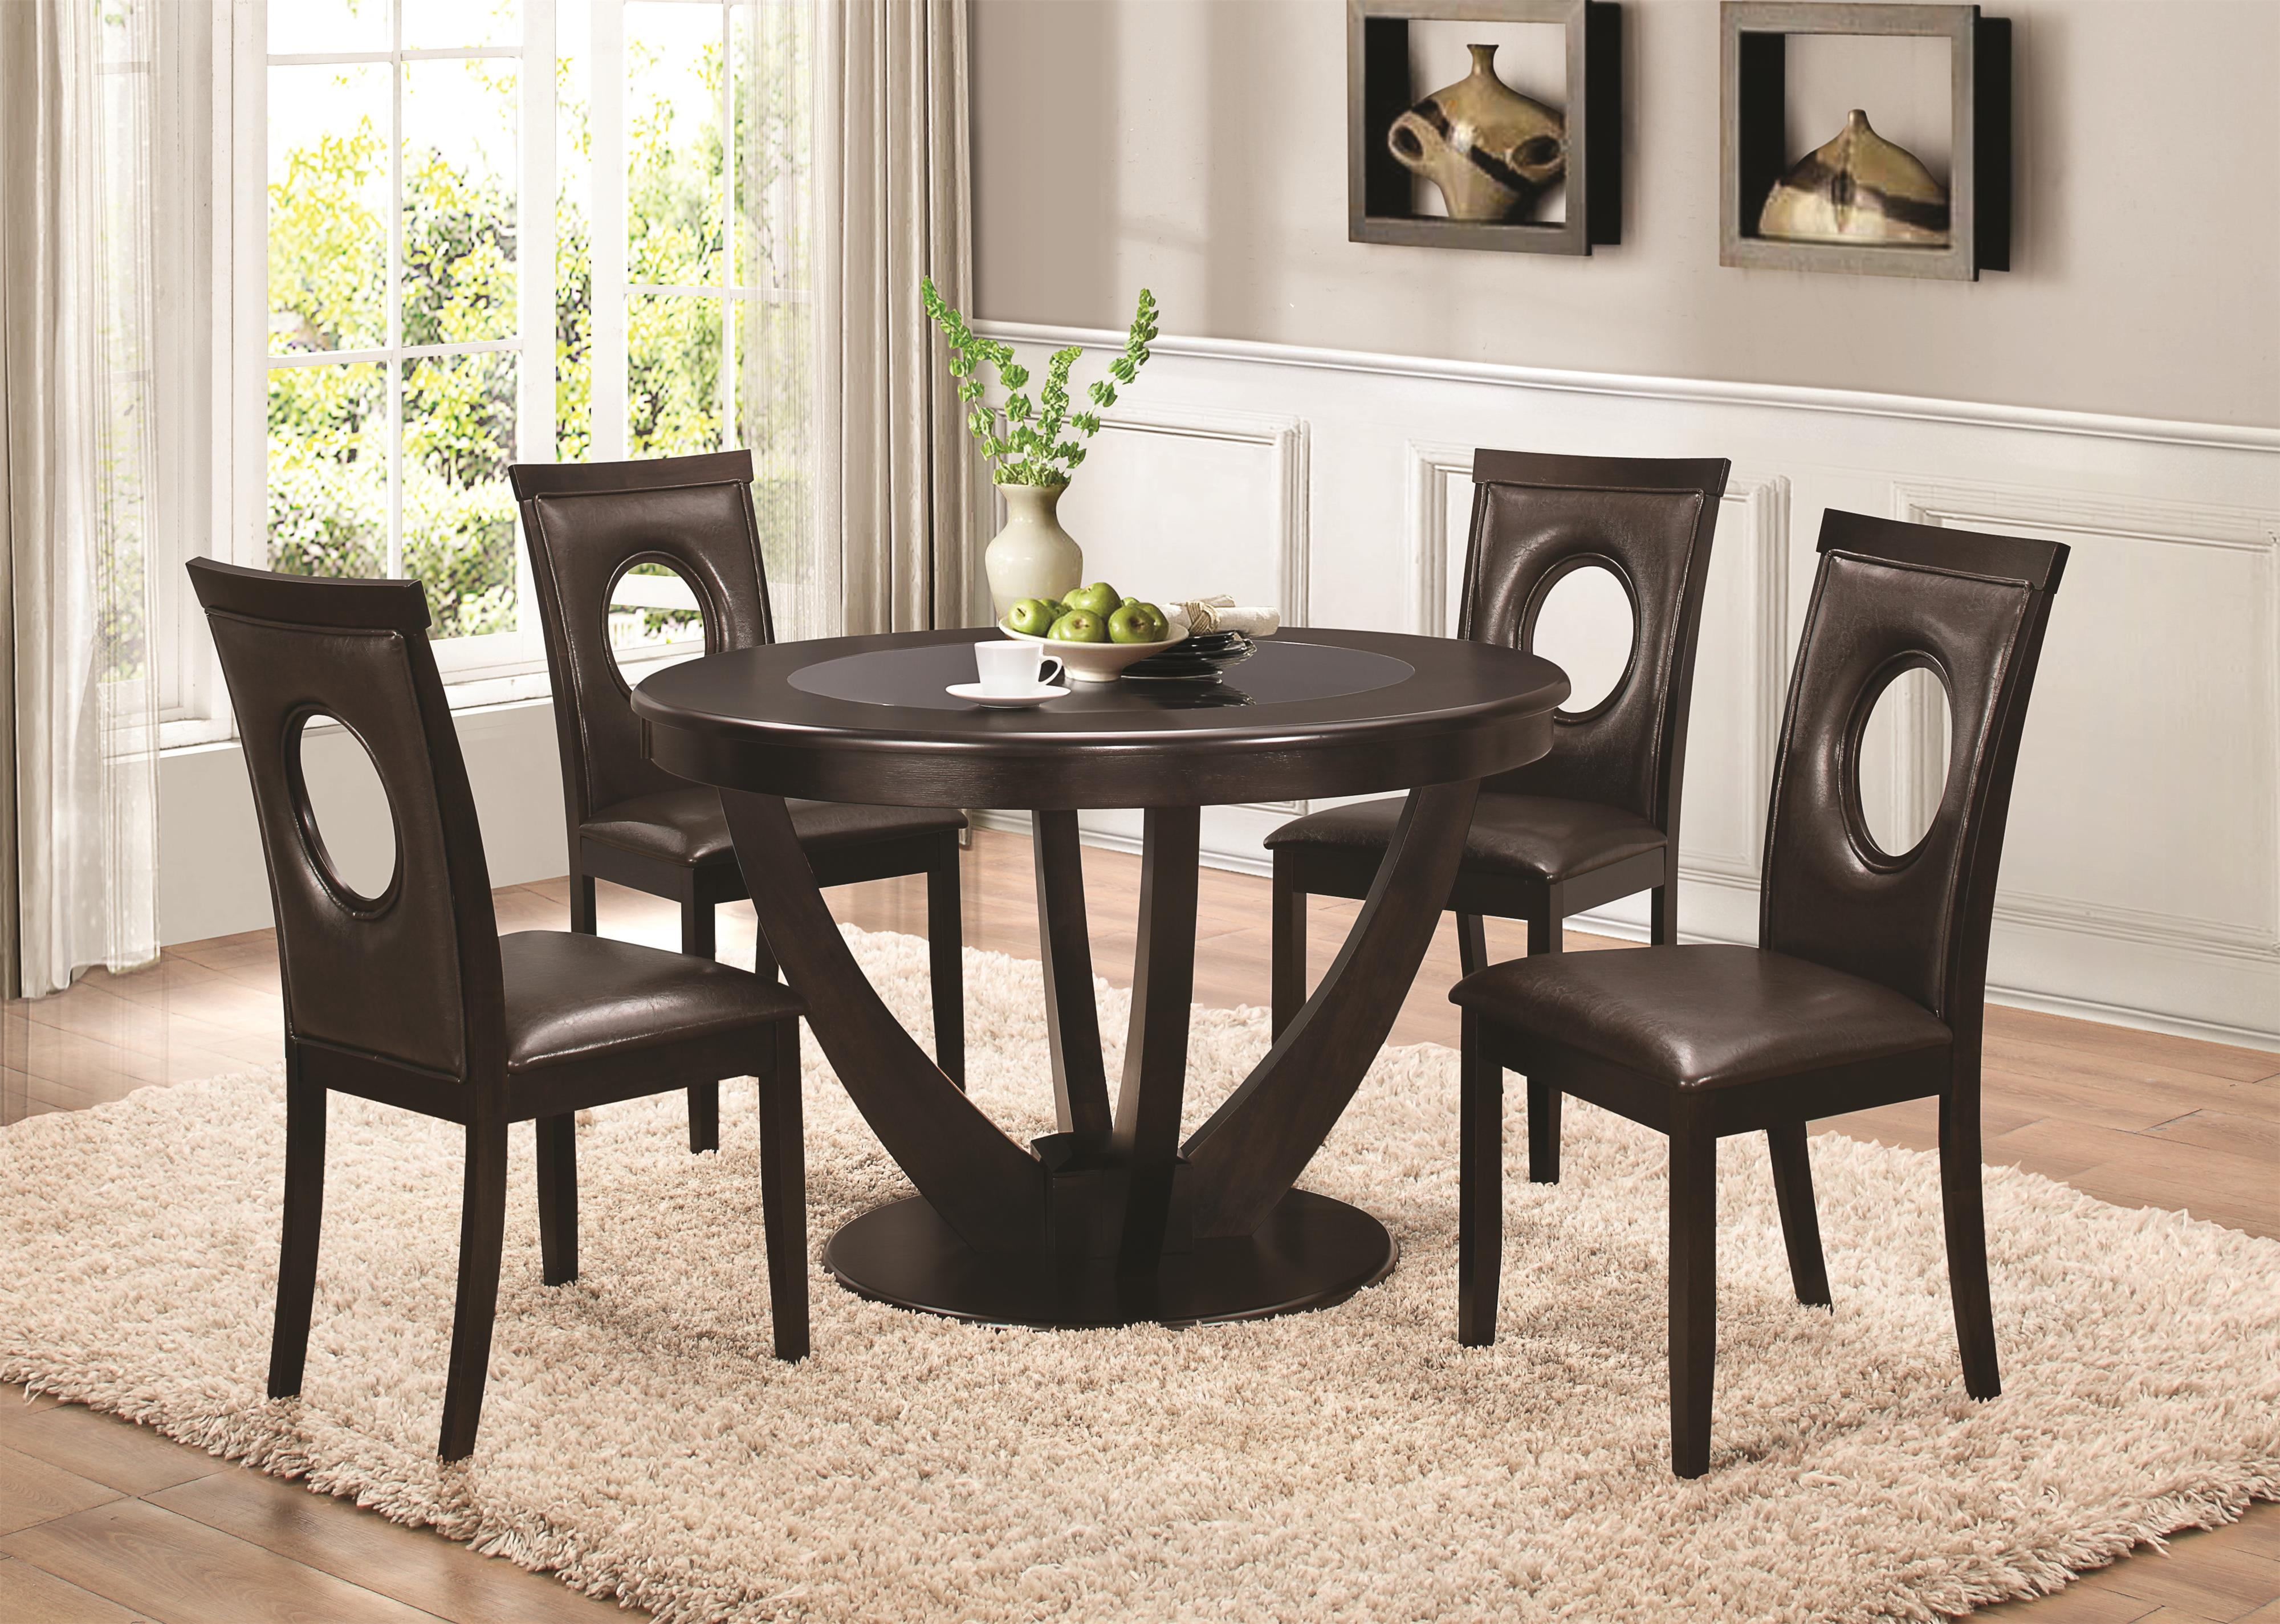 Coaster Stapleton 5 Piece Table and Chairs Set - Item Number: 106741+4x42